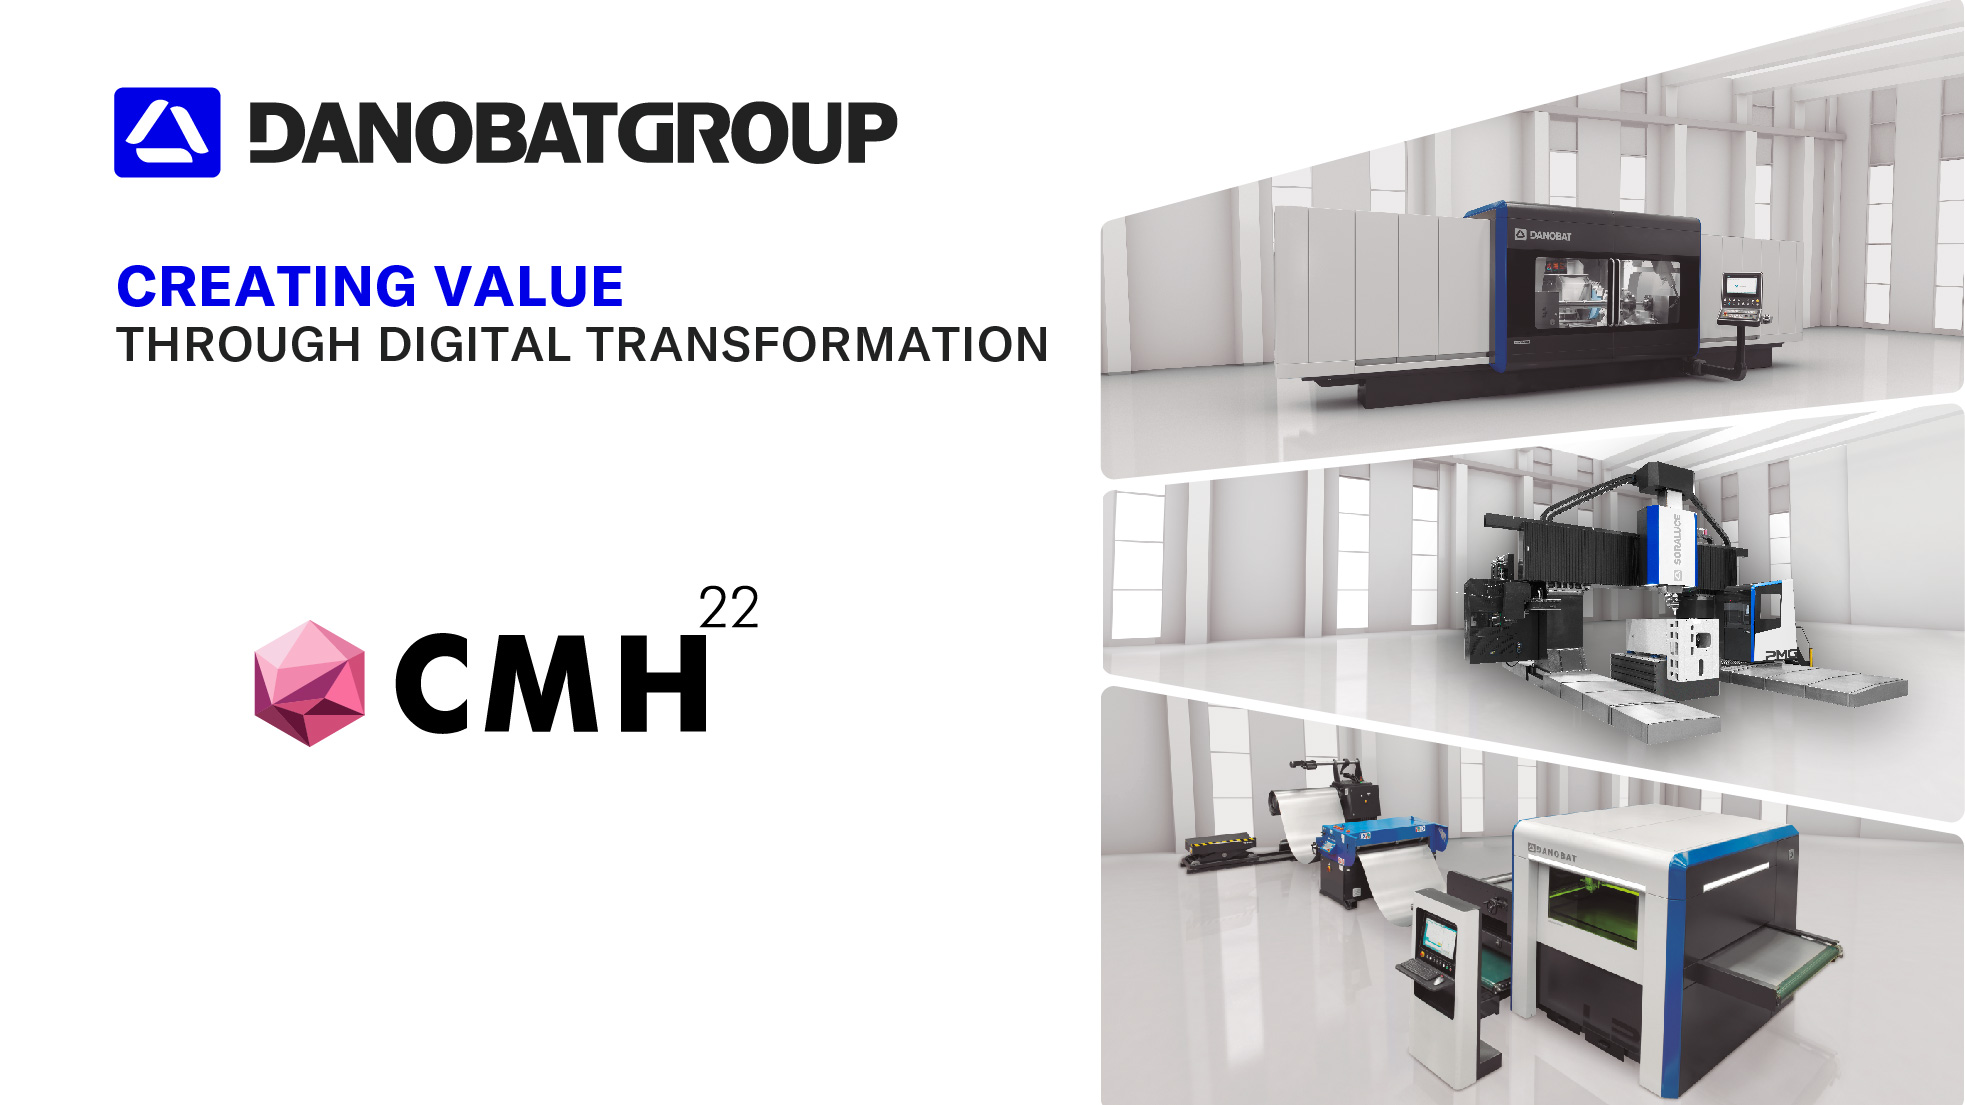 Danobatgroup evidences its commitment to digitalisation and talent management at the Machine Tool Congress